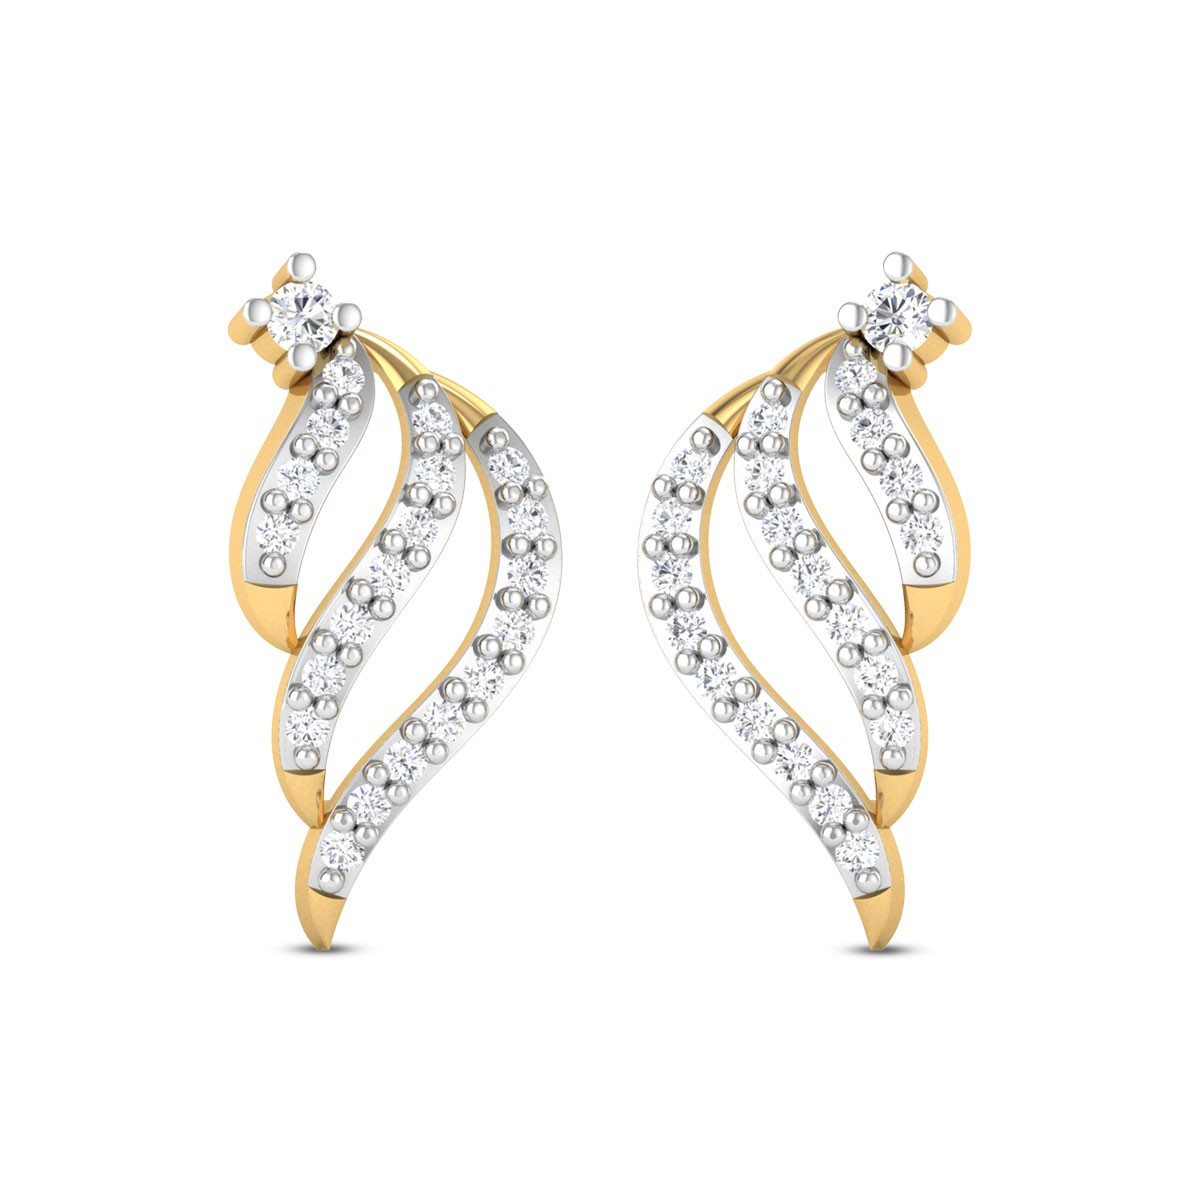 Morning Glory Diamond Earrings